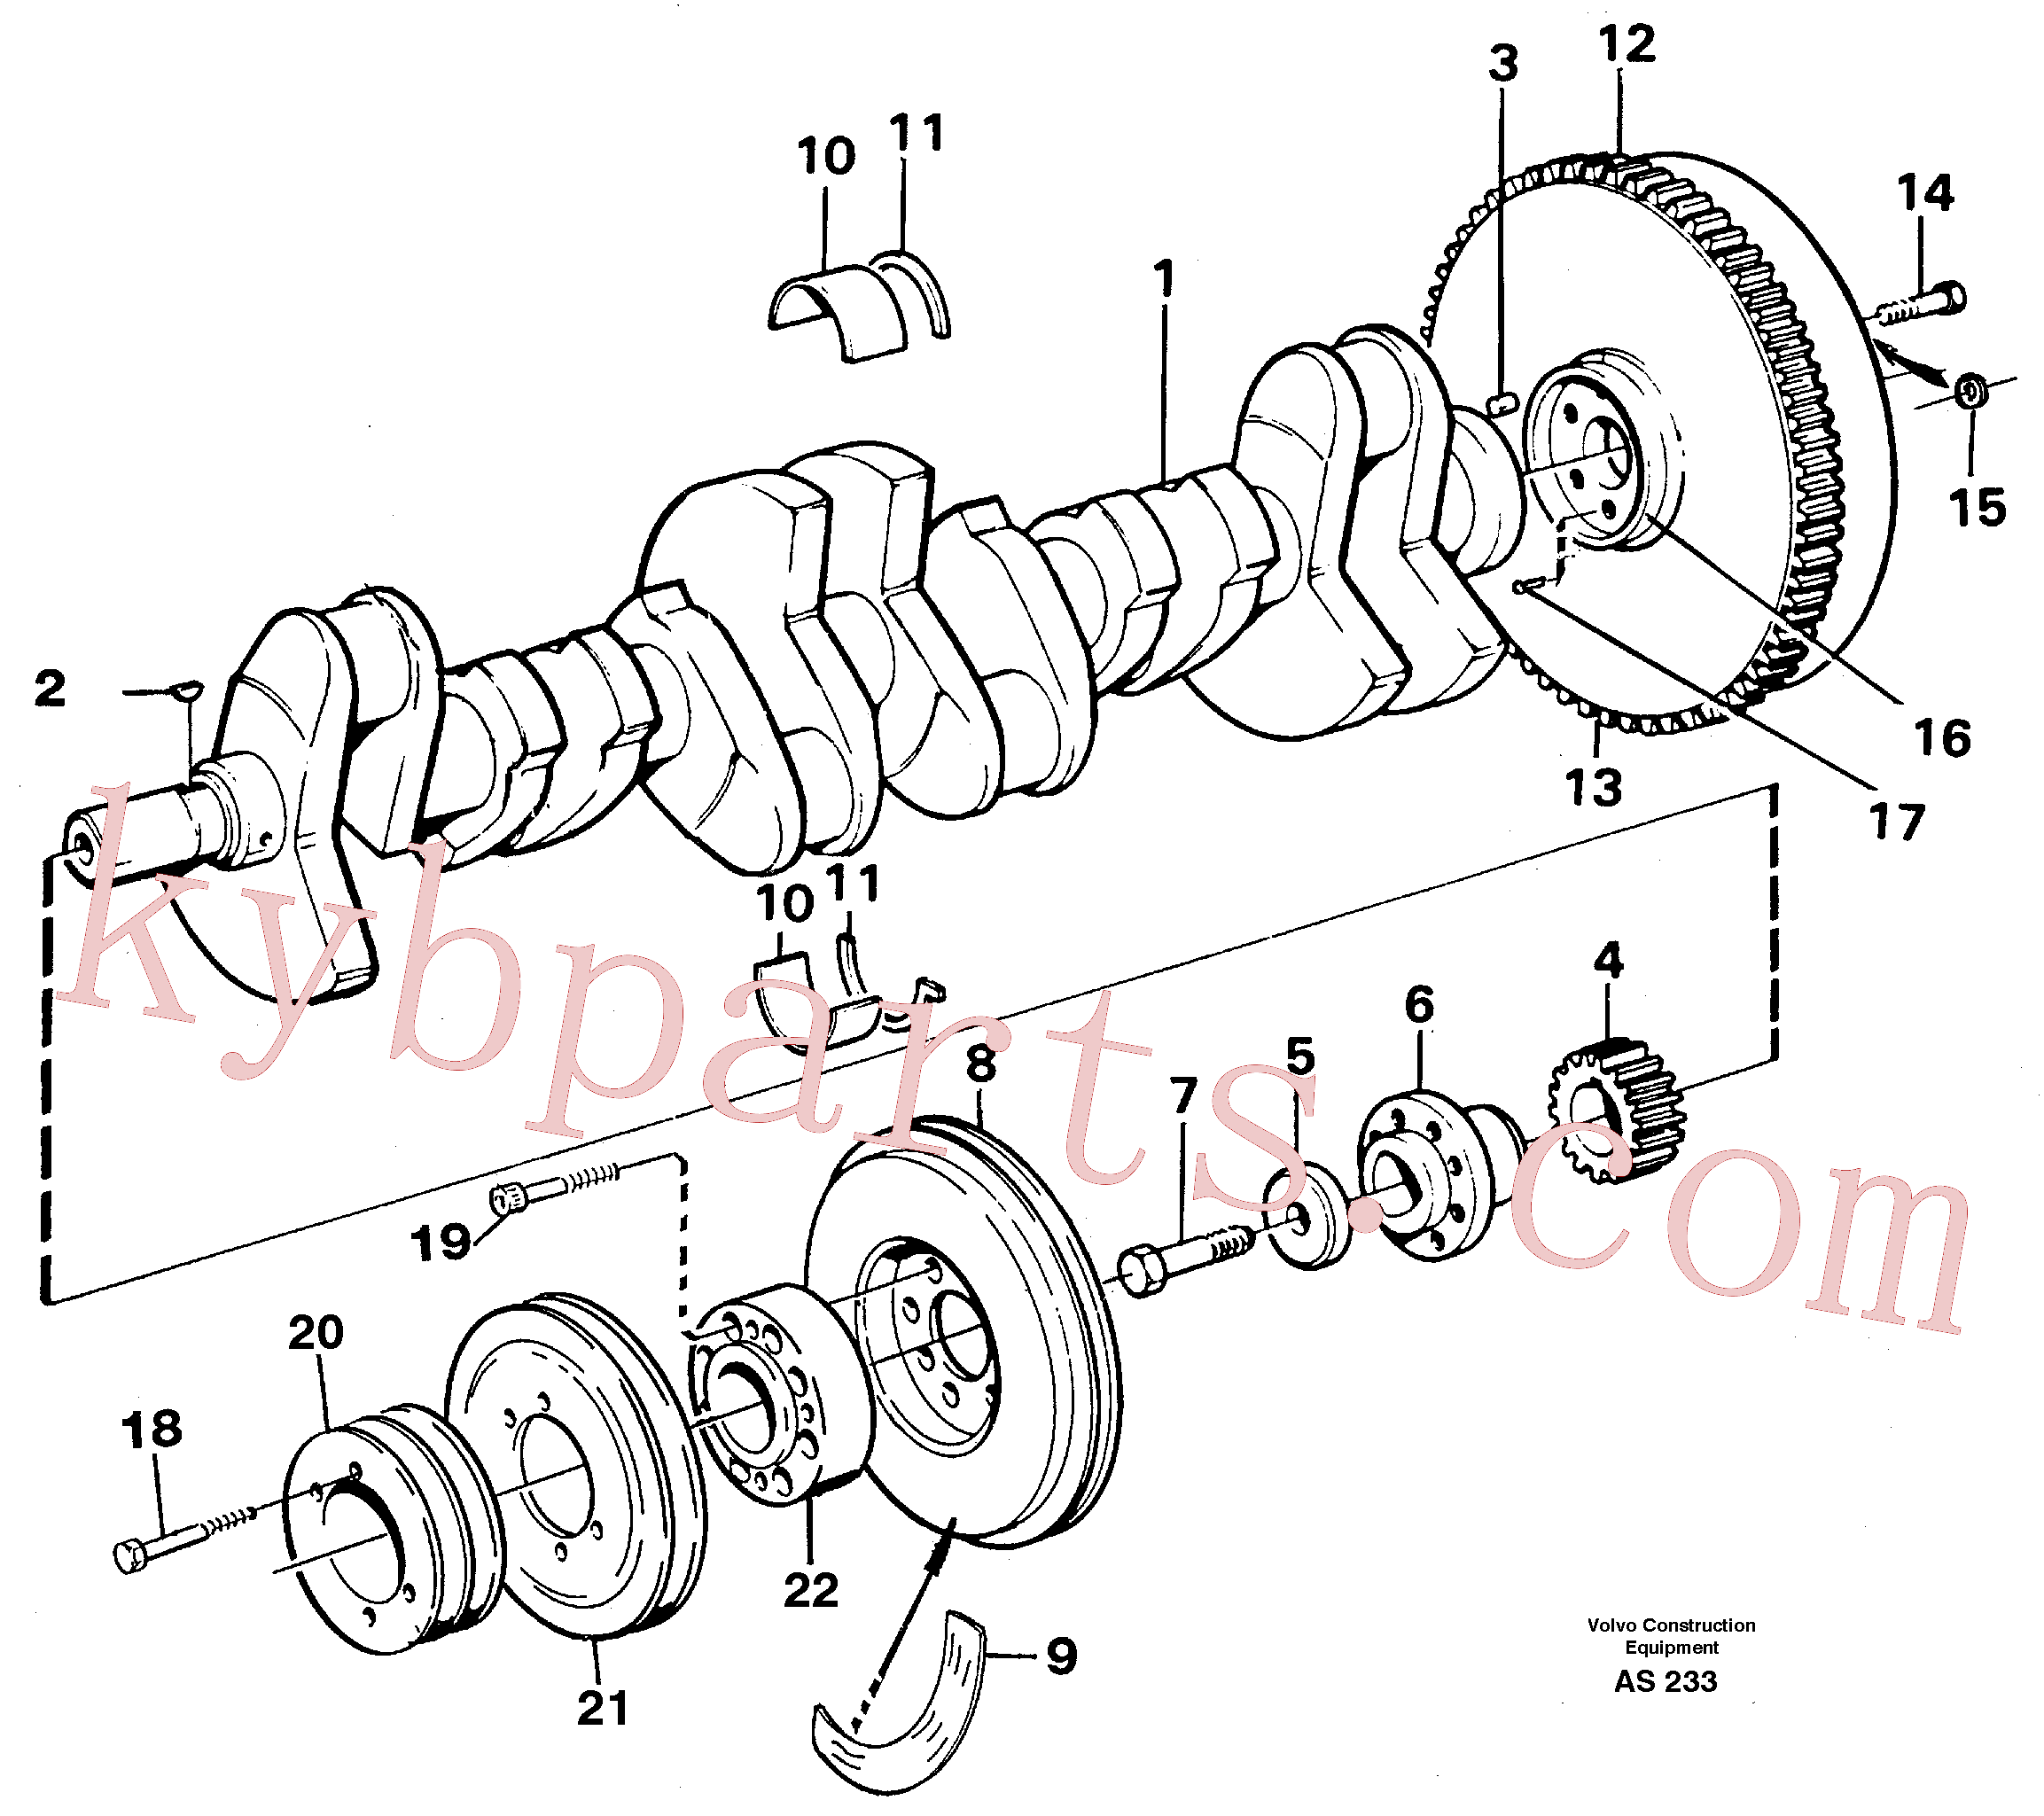 VOE420314 for Volvo Crankshaft and related parts(AS233 assembly)